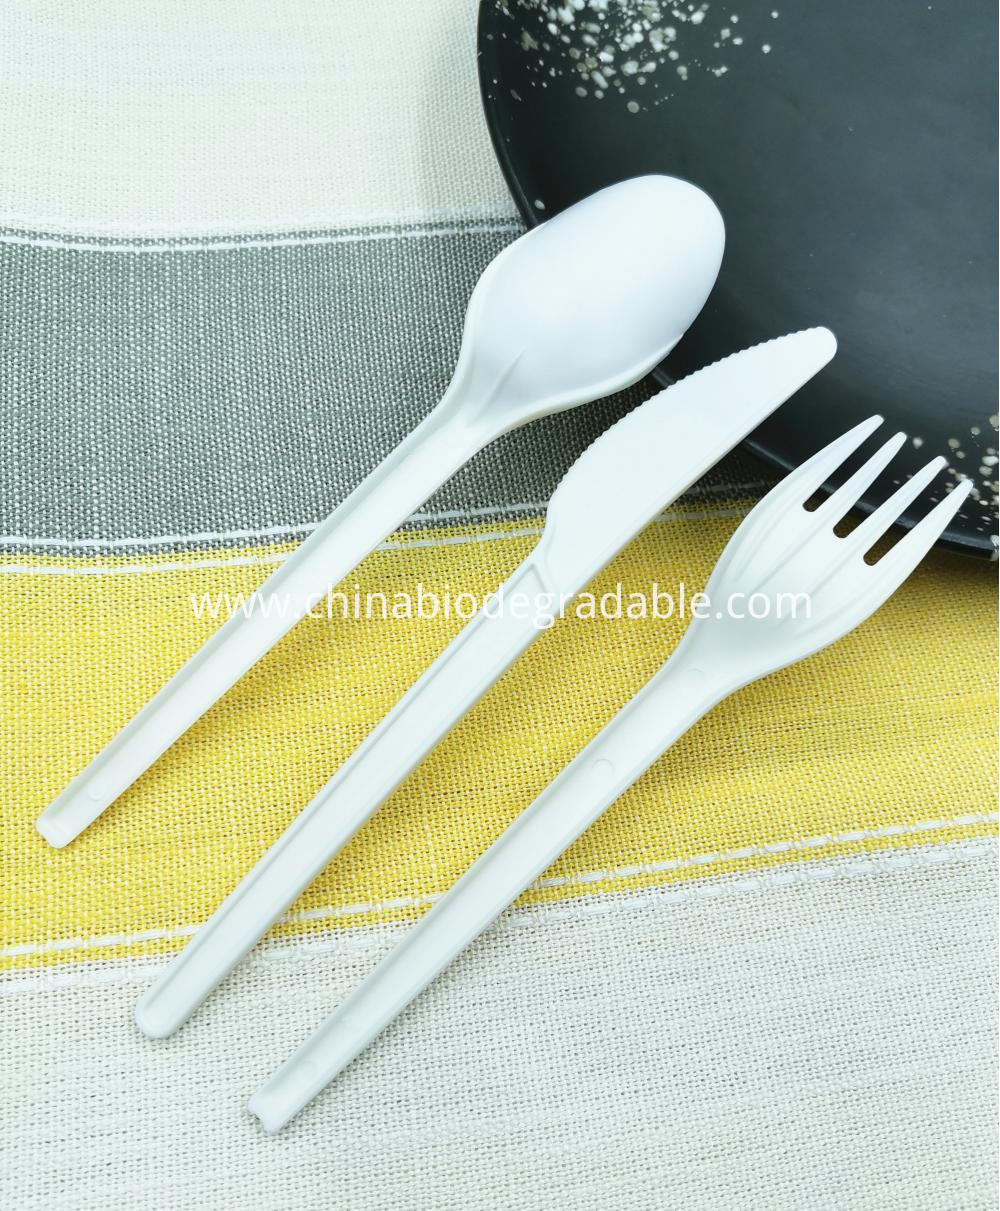 100% Biodegradable Cutlery Forks Knifes Spoons